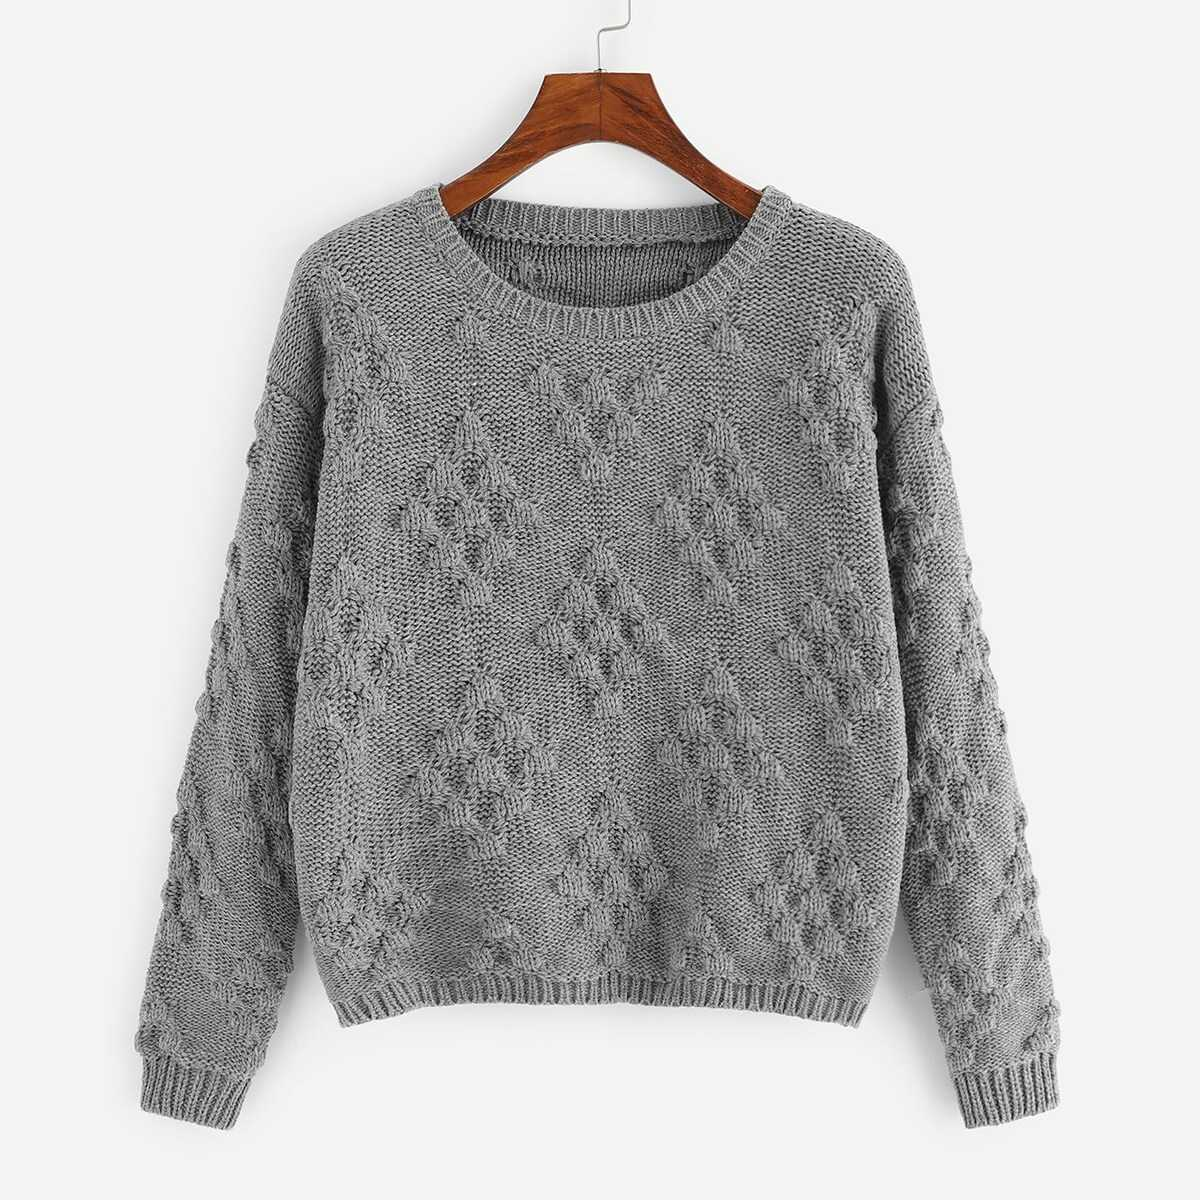 cce6e135c4fa Drop Shoulder Geo Knit Sweater Shein | GOOFASH SHOP